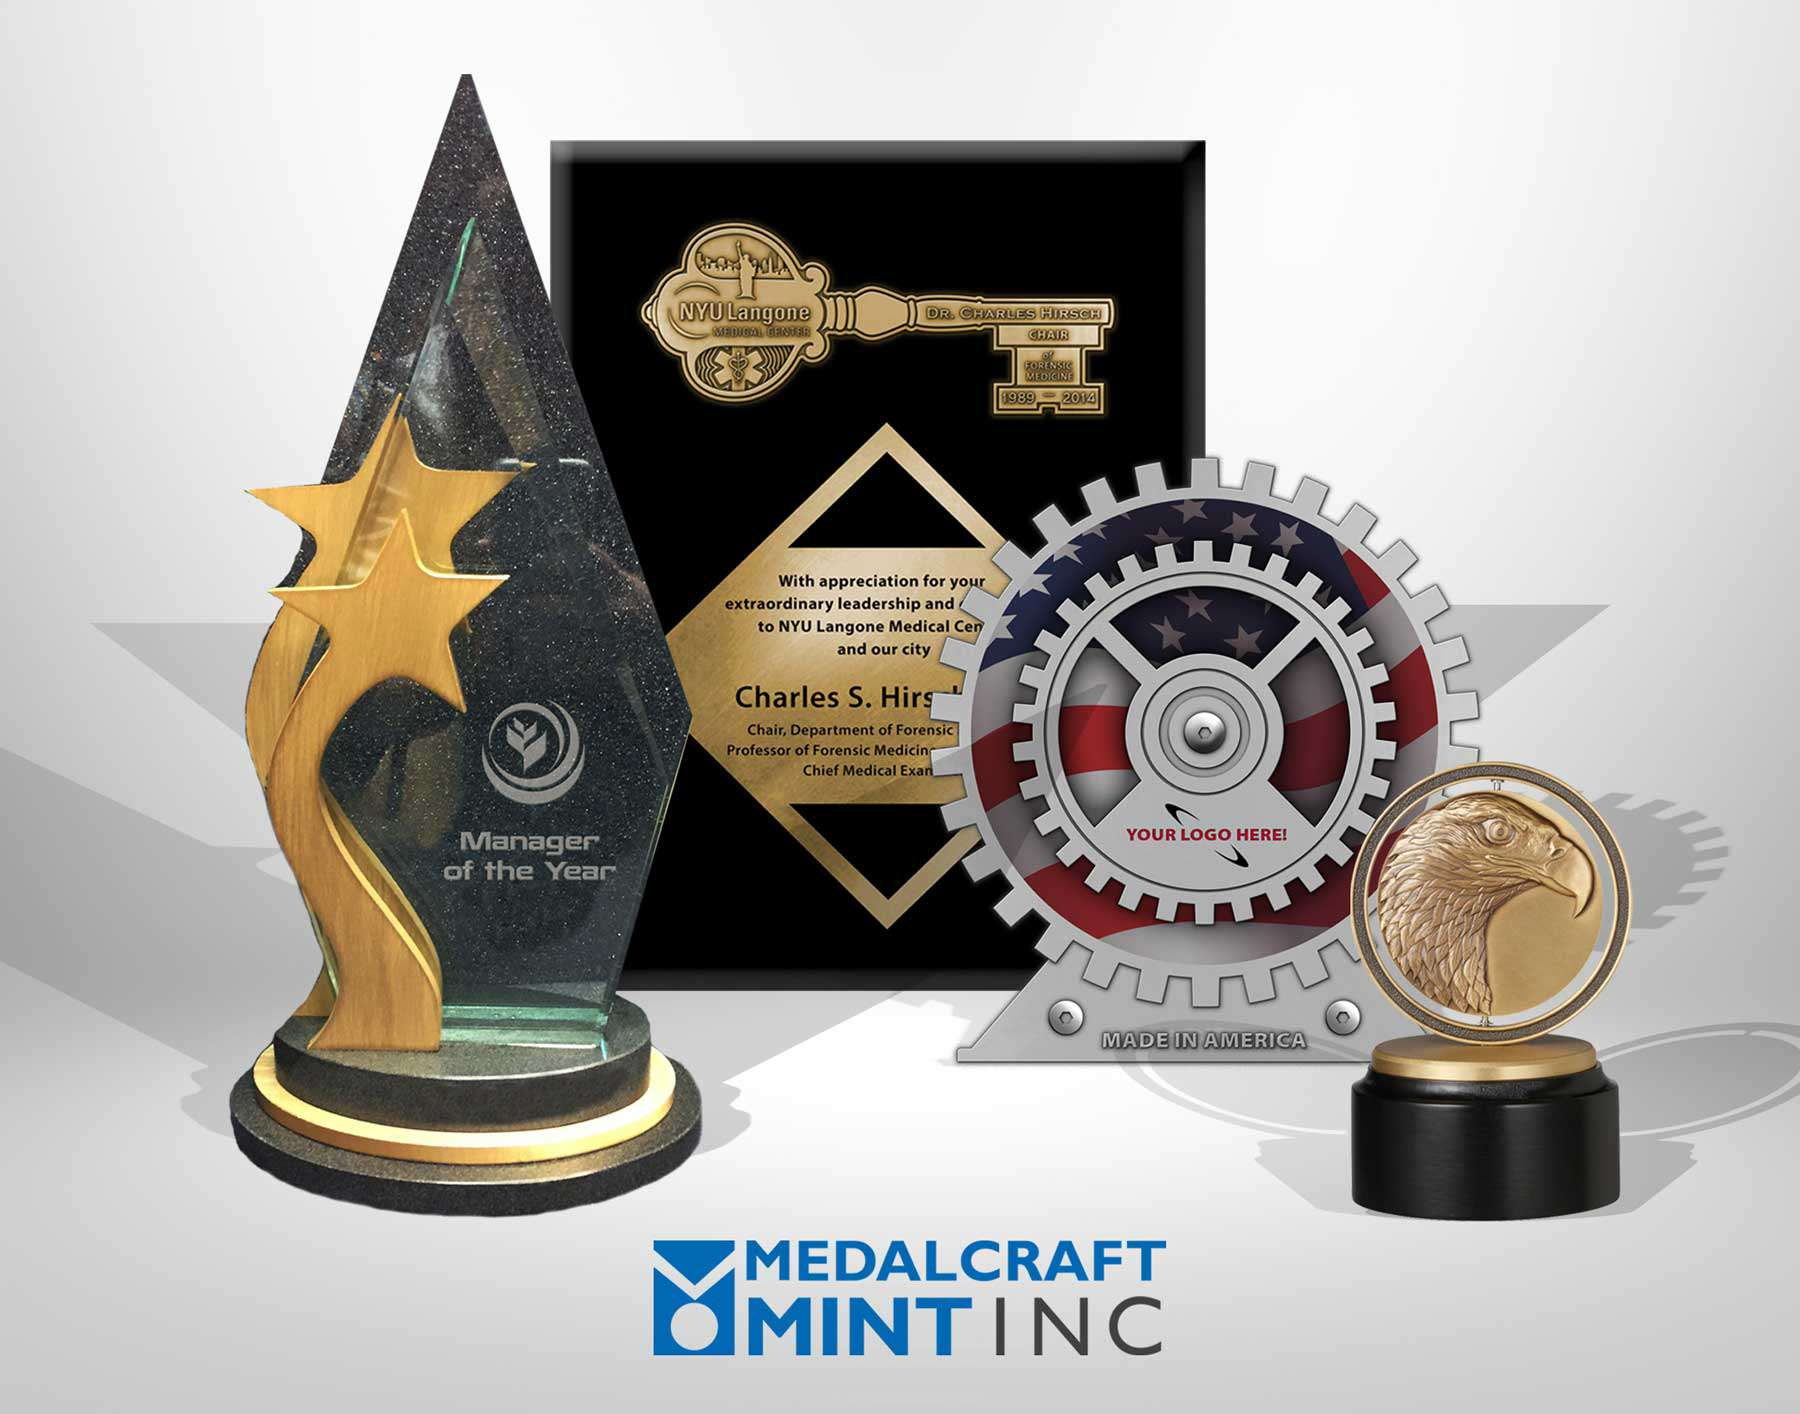 Medalcraft Mint corporate recognition awards